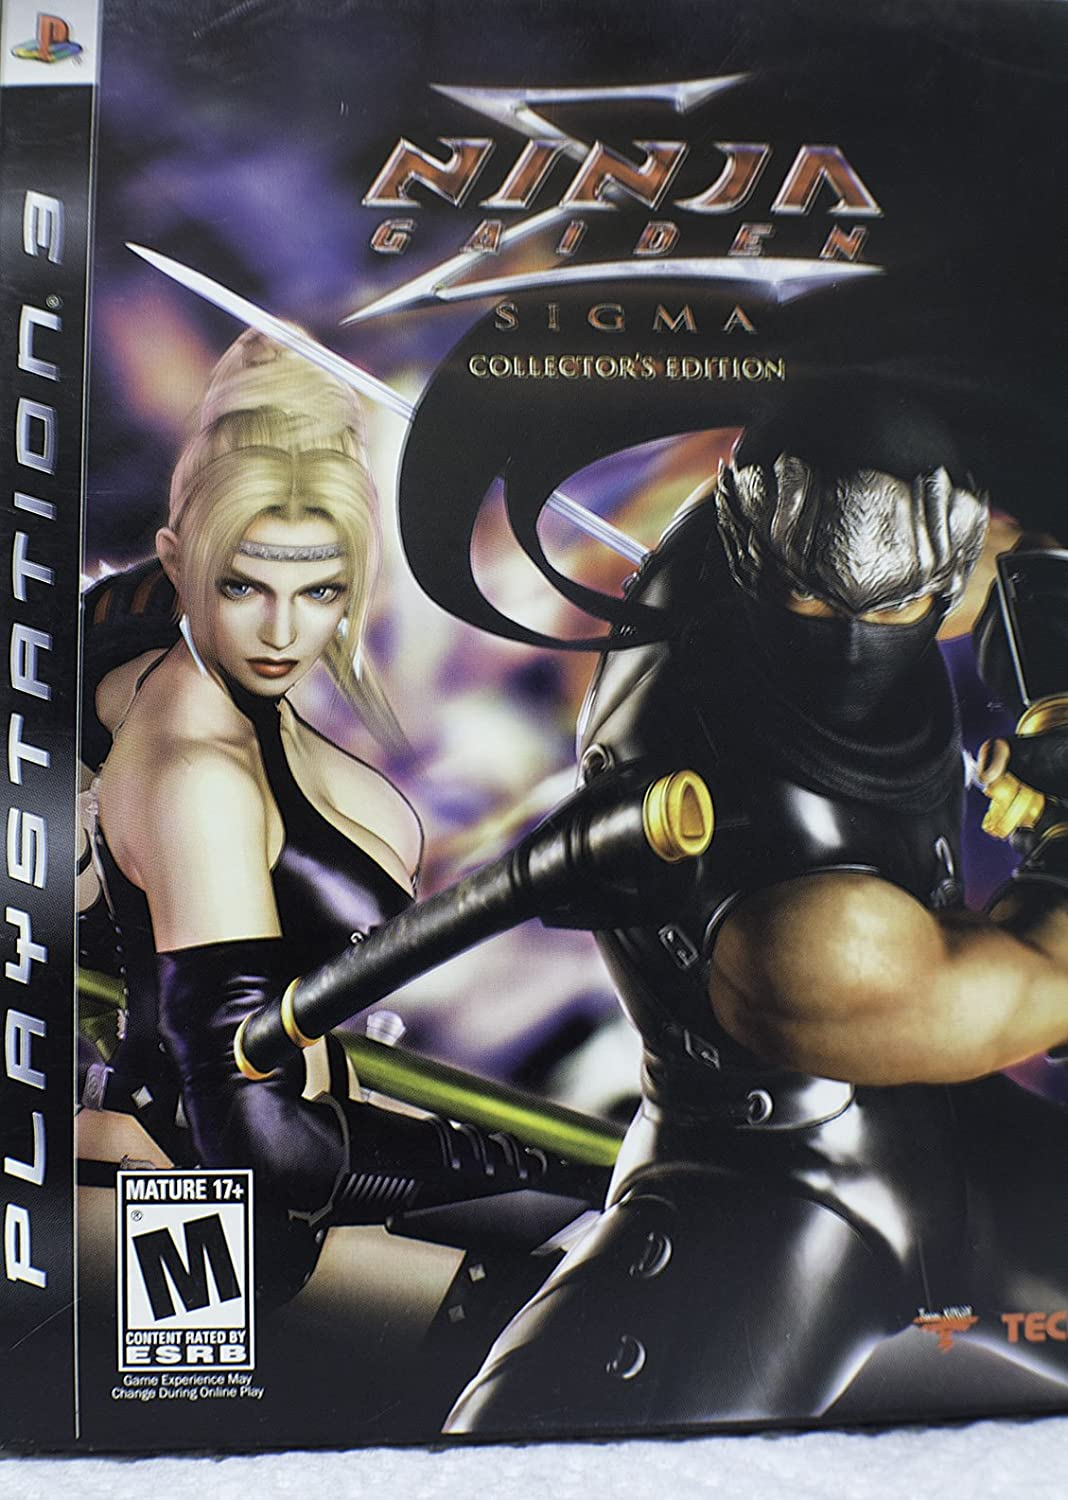 Ninja Gaiden Sigma Collector's Edition